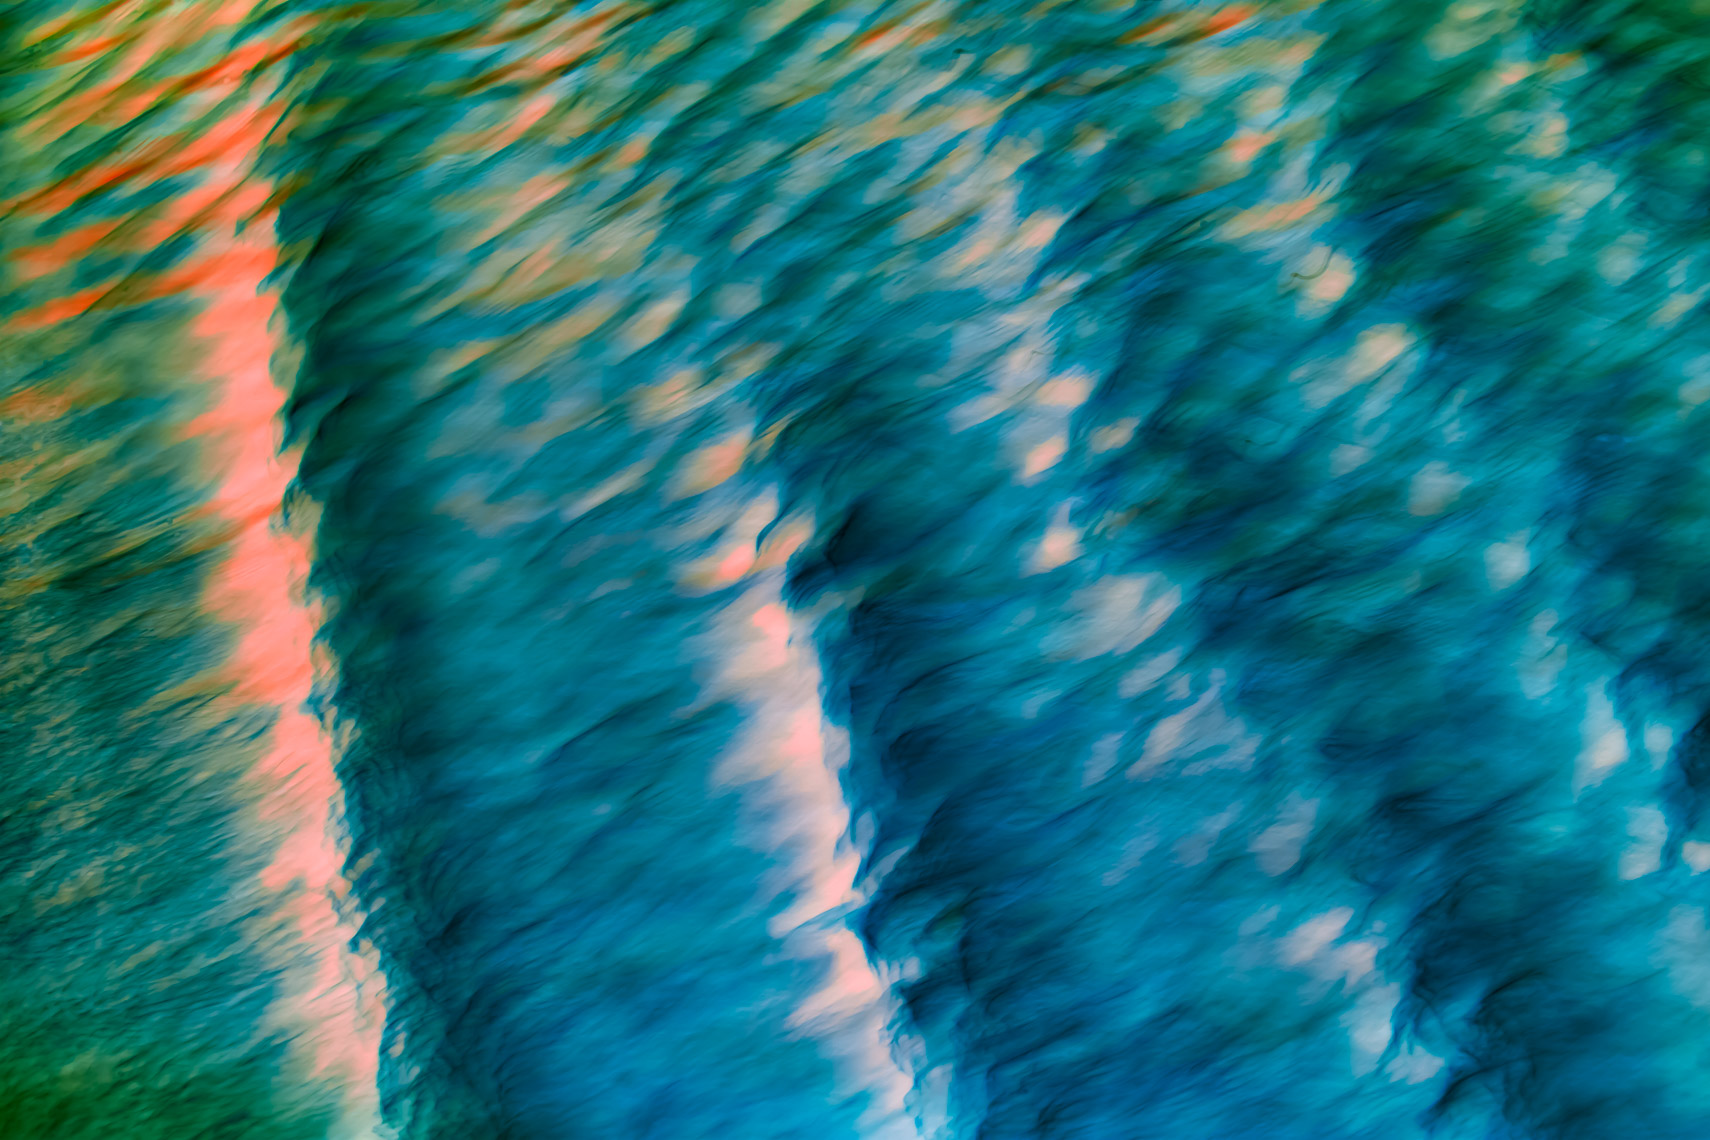 Waves-Art-032-170501